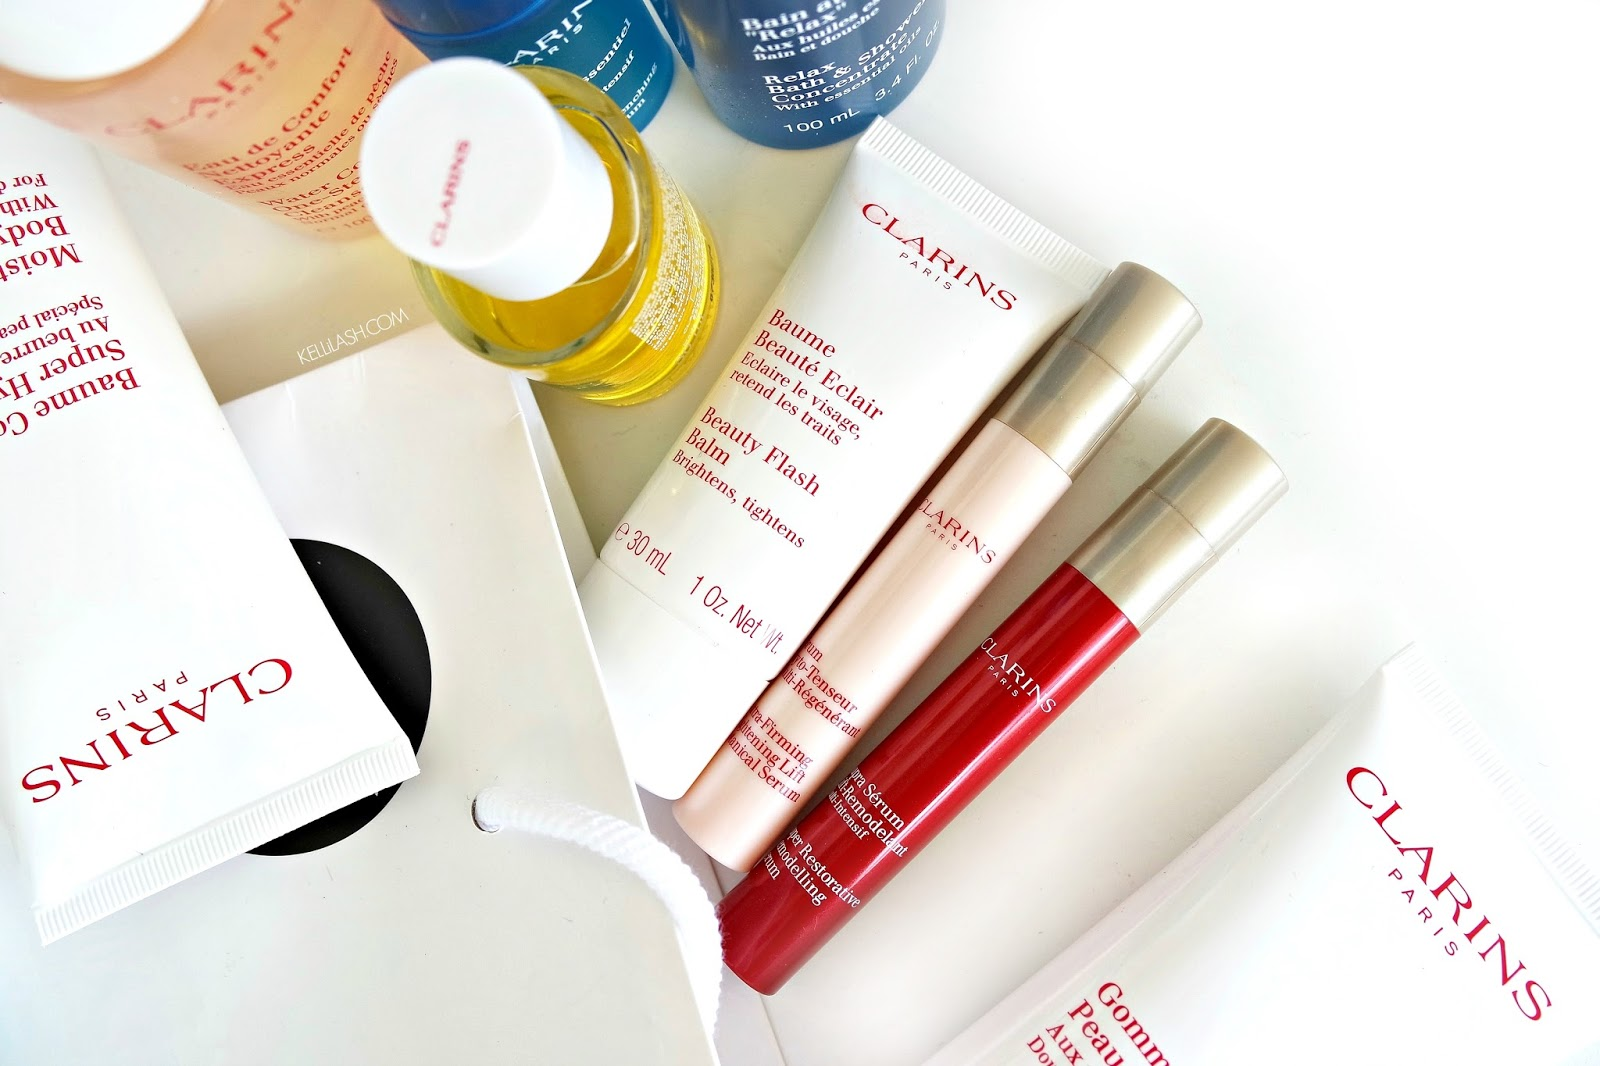 Clarins Super Beauty Gift Which 4 Will You Choose